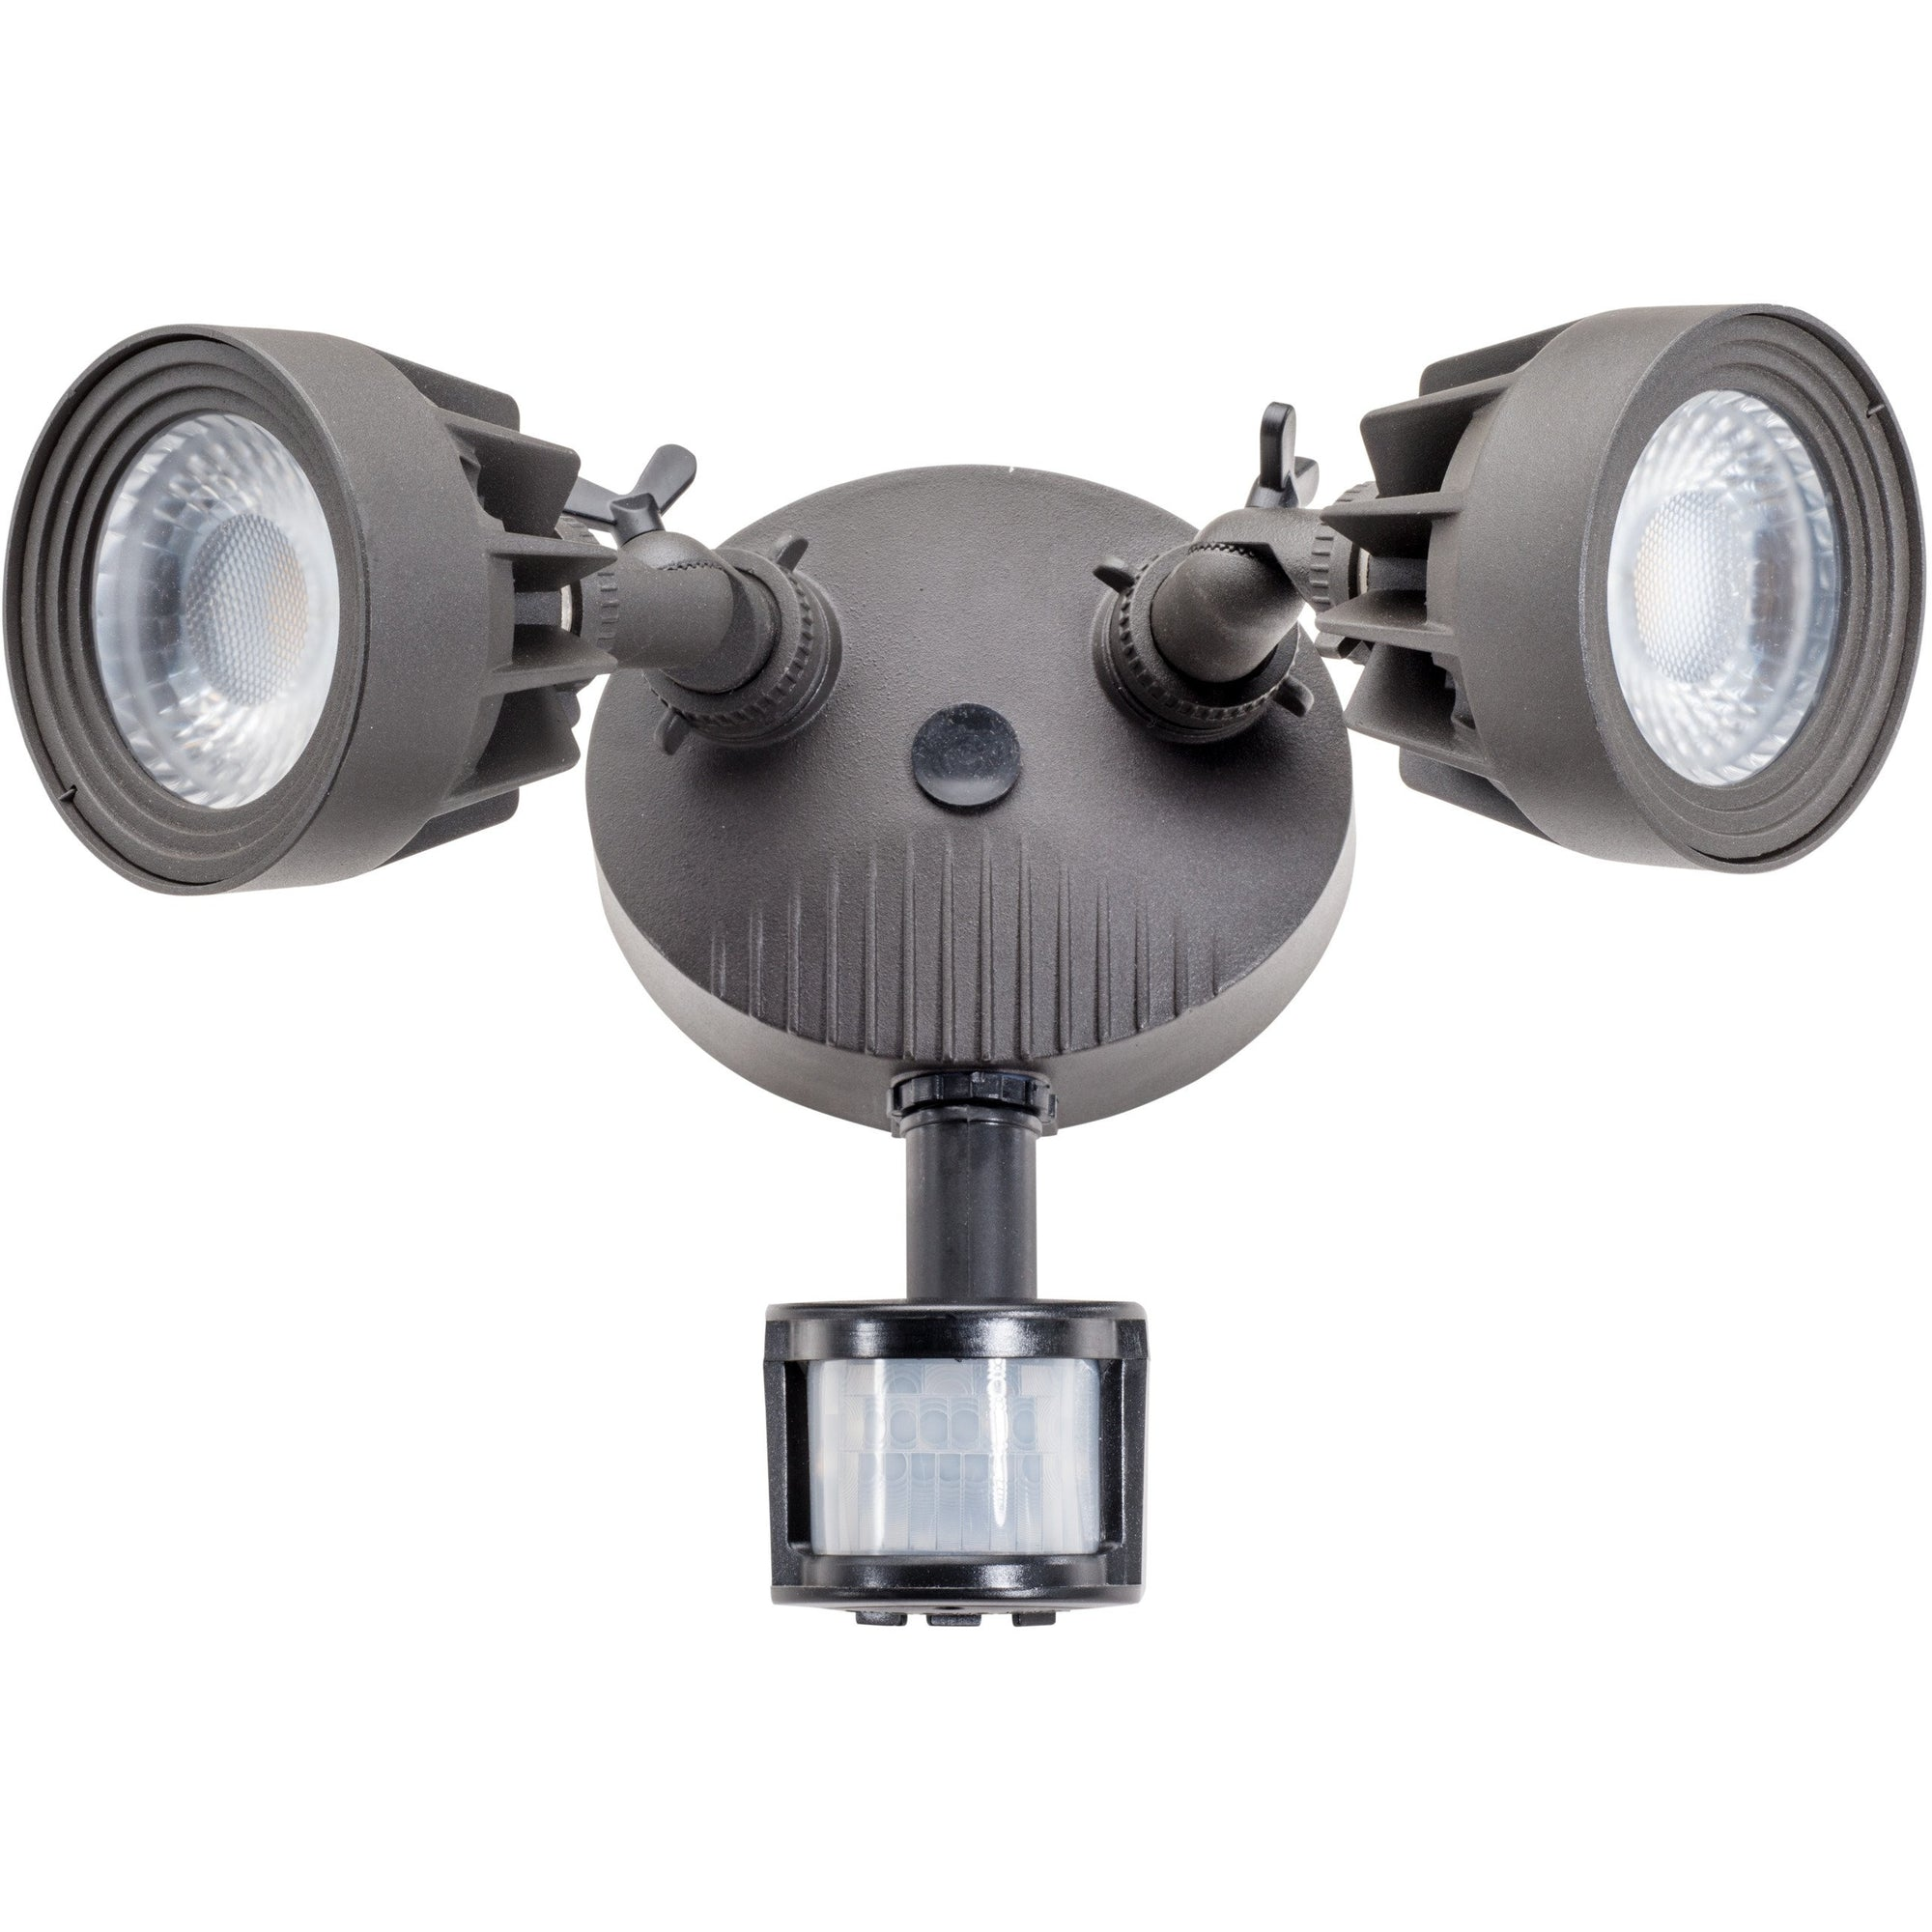 LED 24W SECURITY LT W SENSOR -BLK (DARK BRONZE) - CommerciaLight Distributors